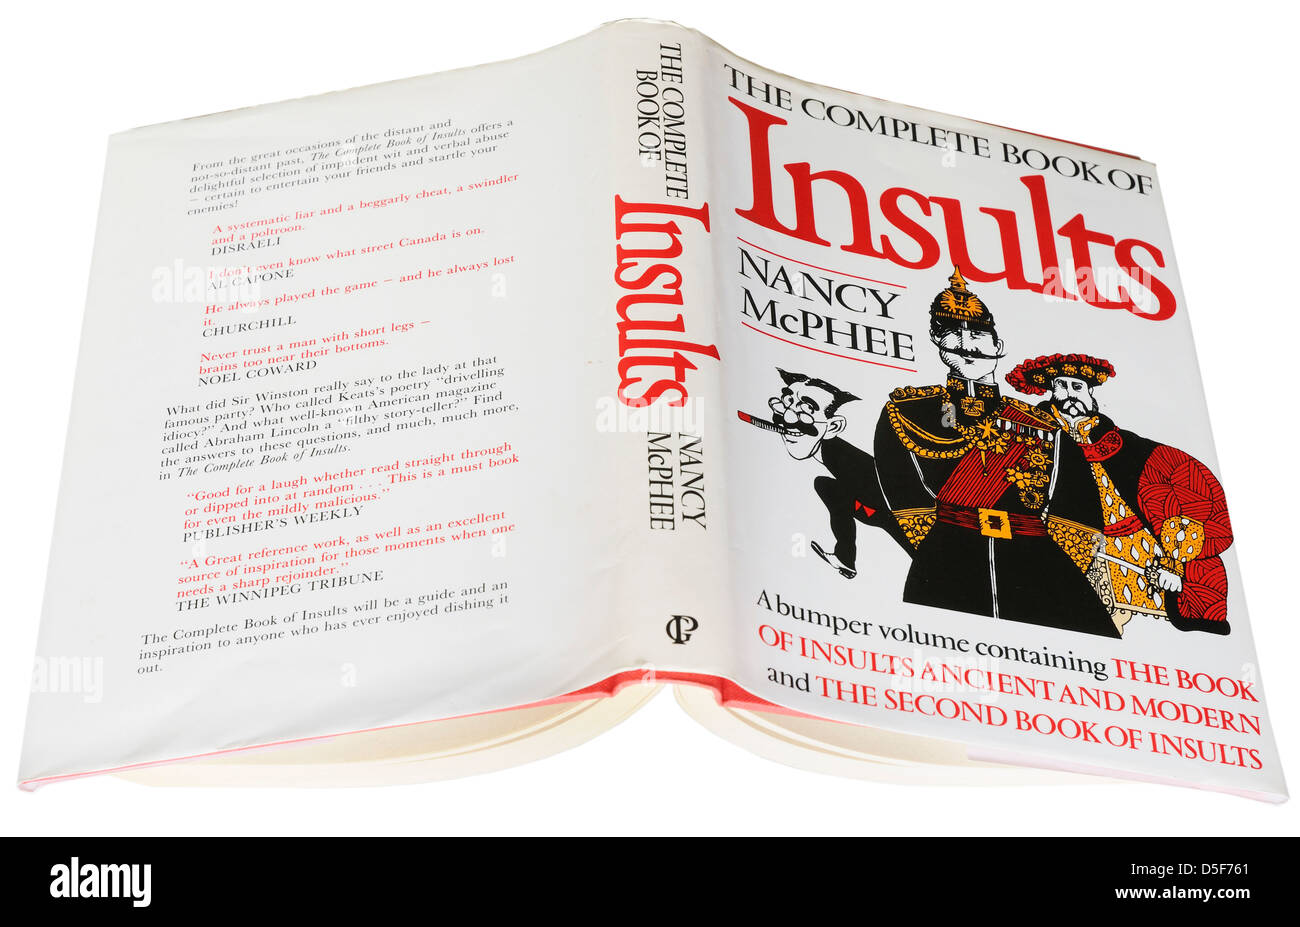 The Complete Book of Insults by nancy McPhee - Stock Image